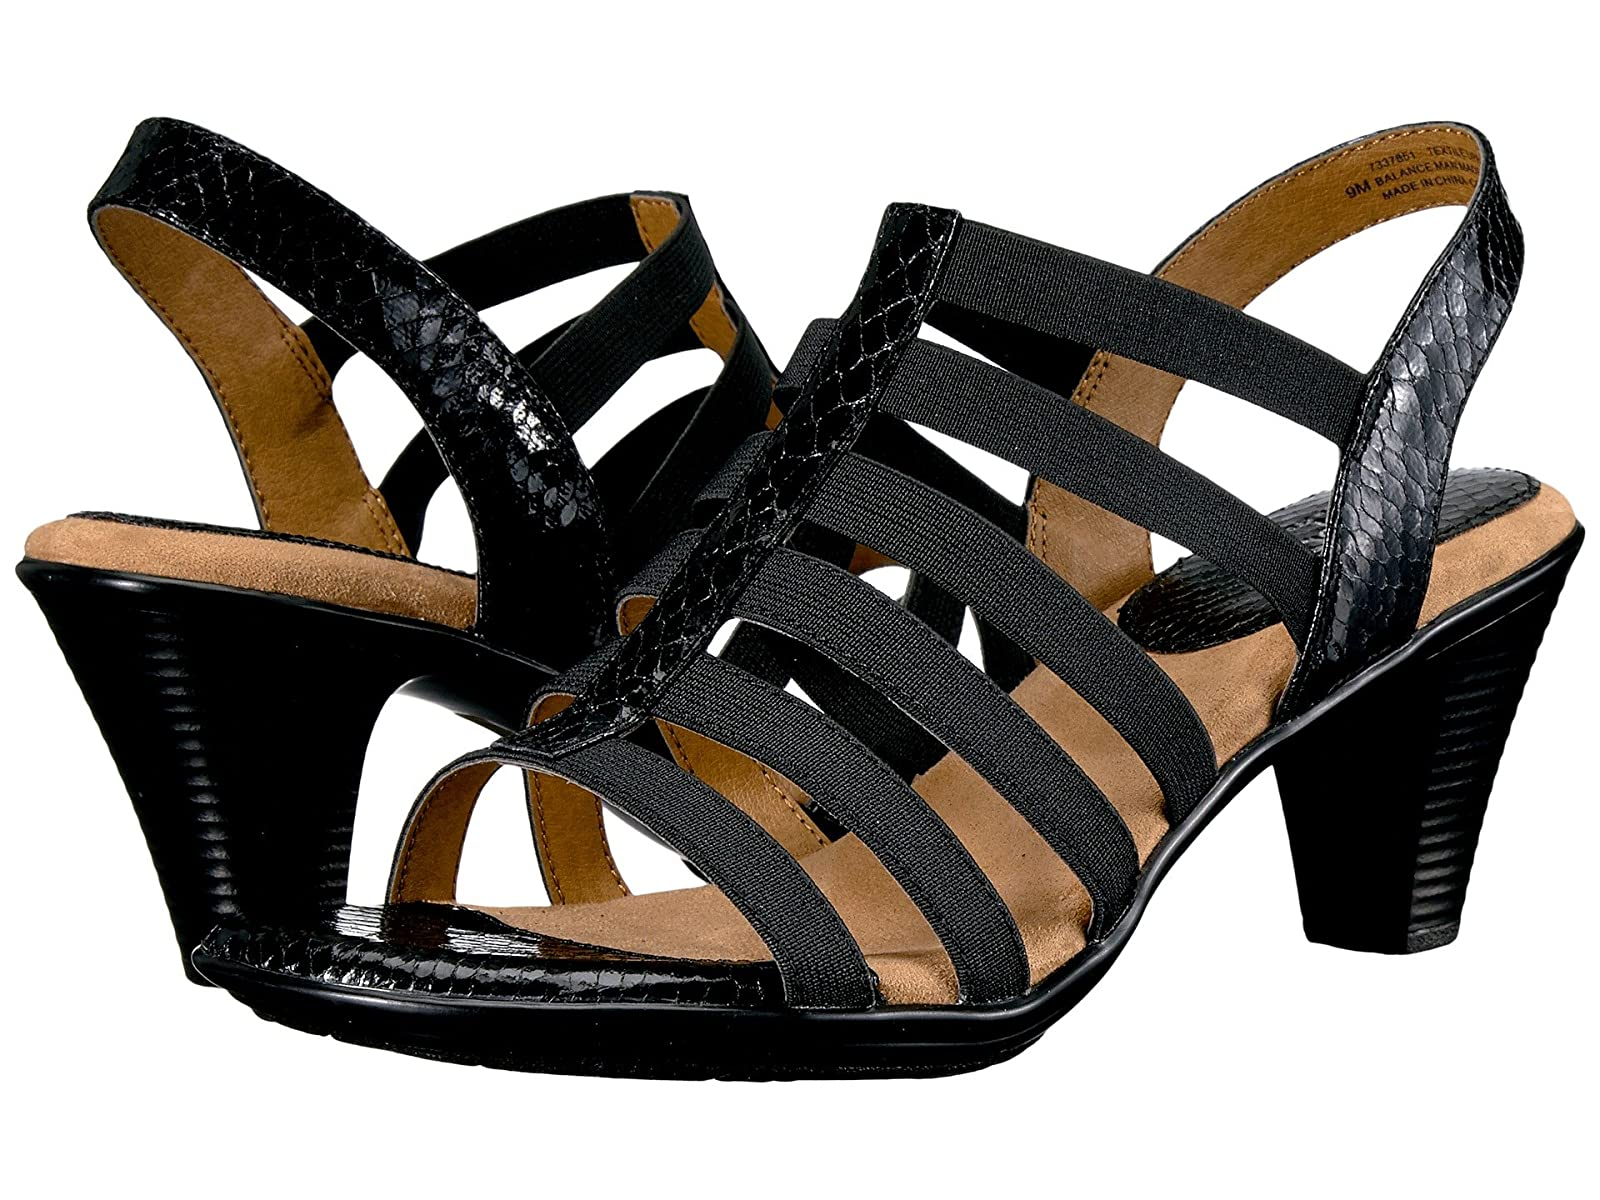 Comfortiva Naples SoftspotsCheap and distinctive eye-catching shoes